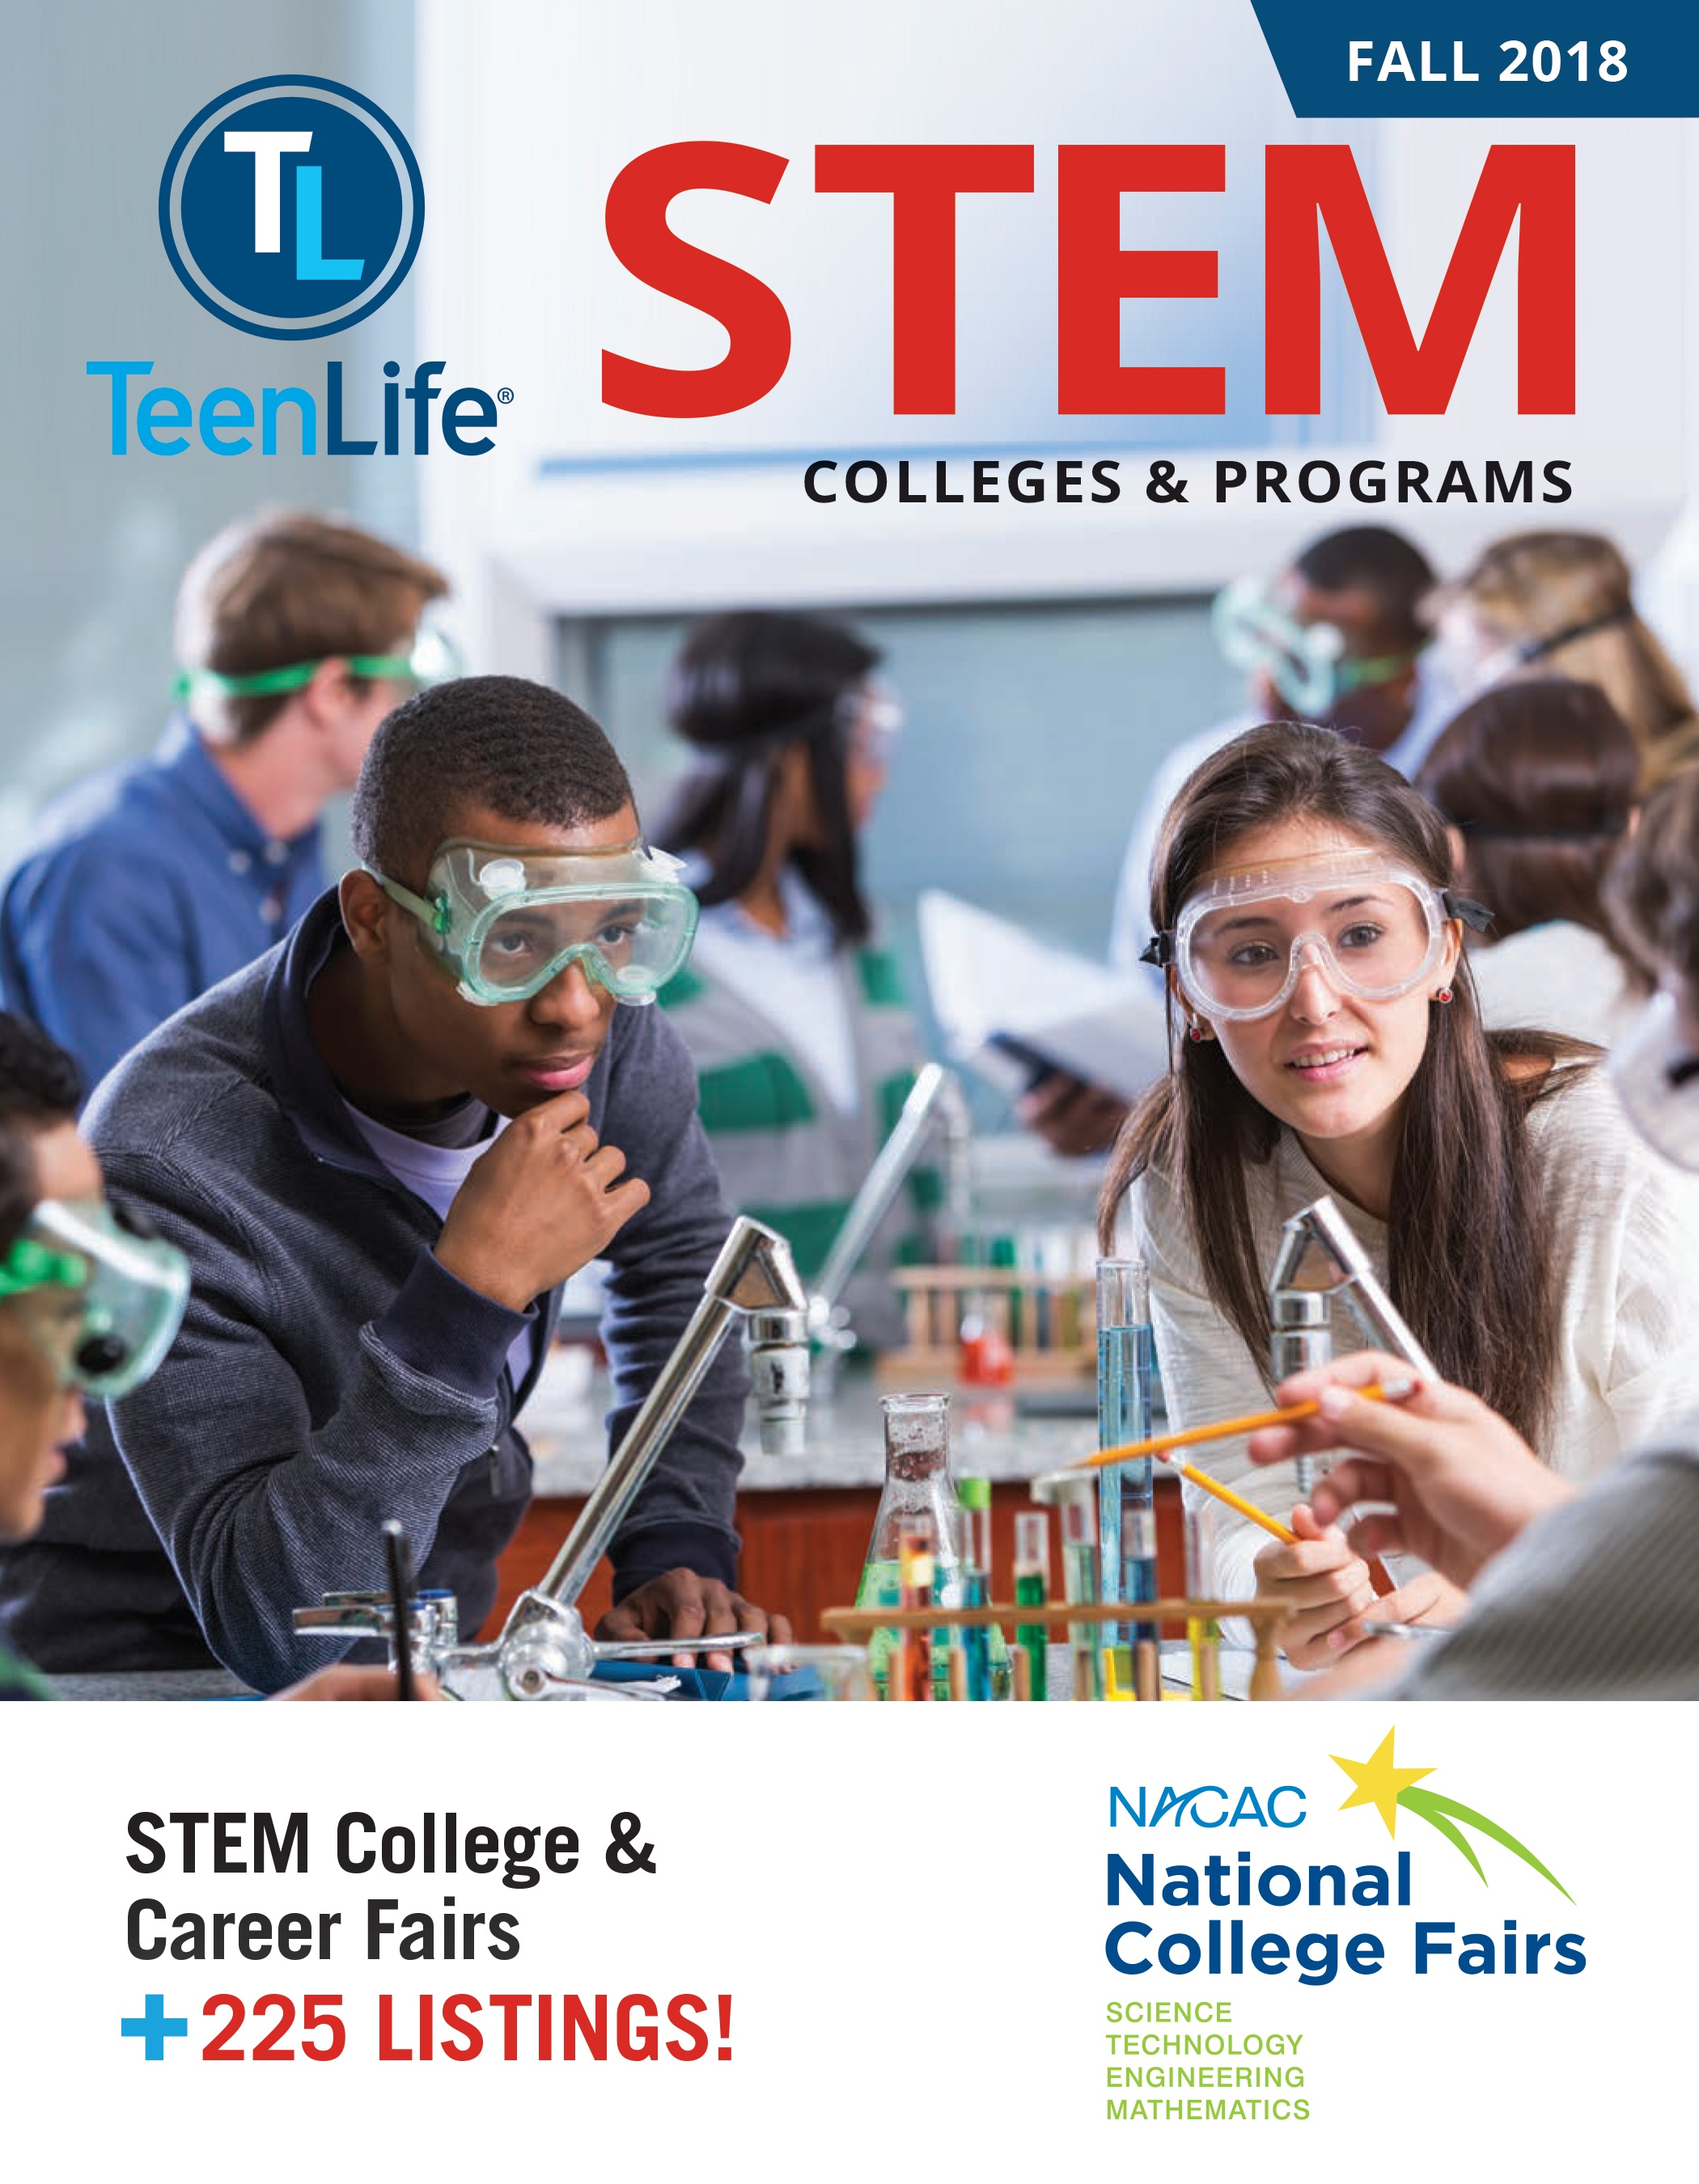 Guide to STEM Colleges & Programs - Fall 2018-TeenLife